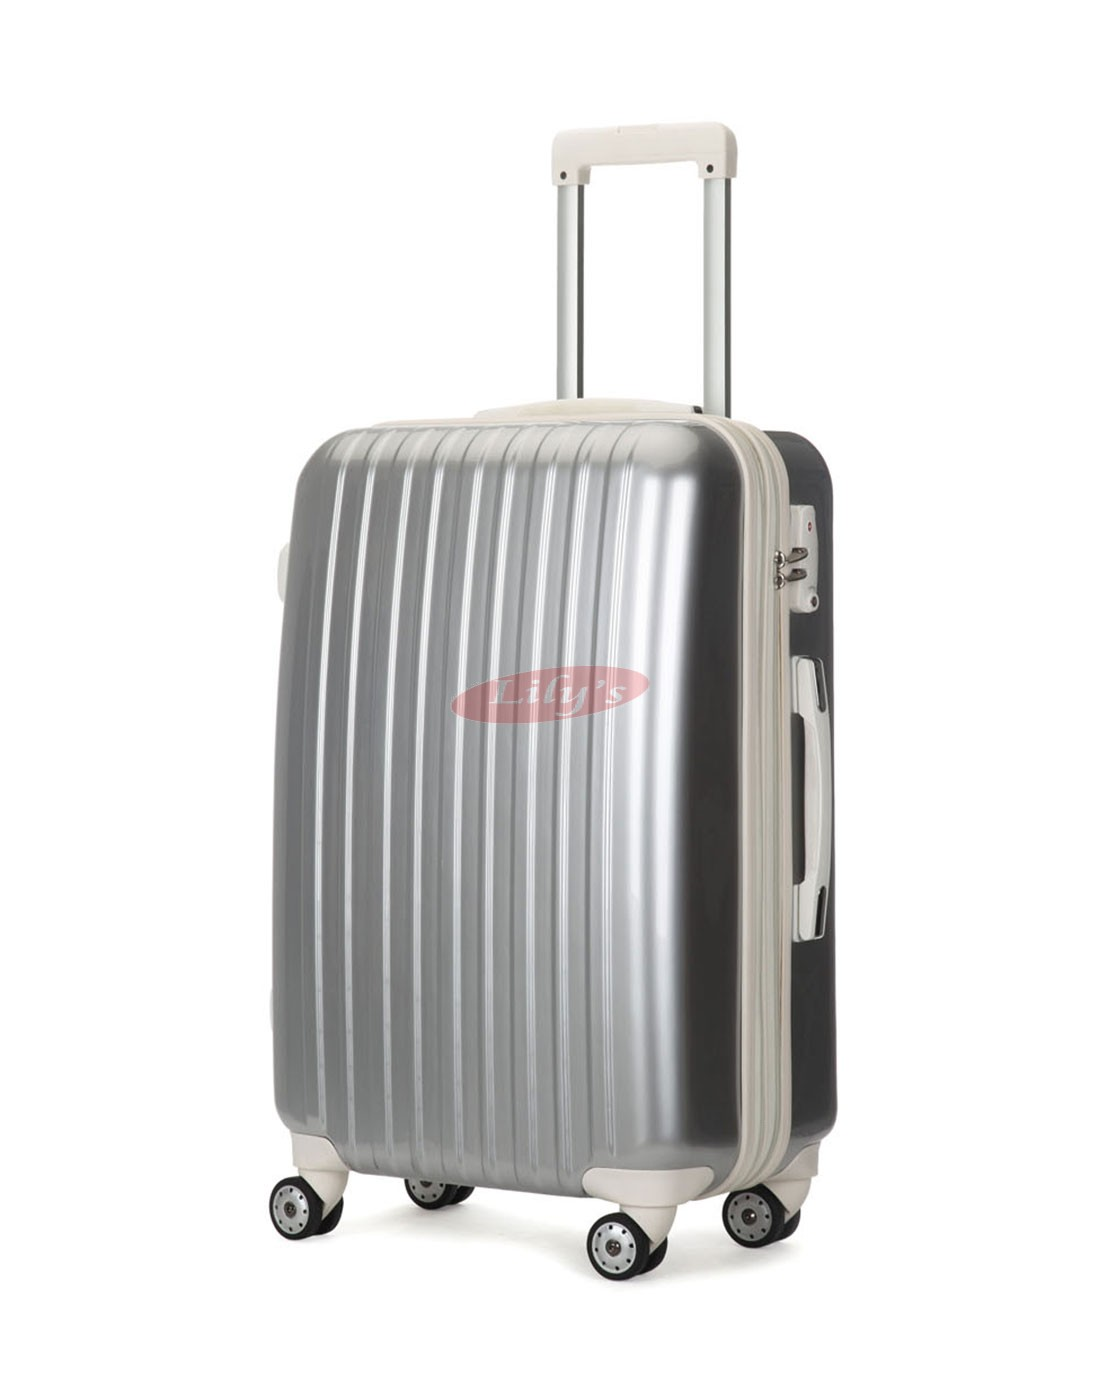 """AIRCROSS 3PC Set Luggage A55 Grey Hard Case Expandable Trolley Luggage - 20""""24""""&26"""""""